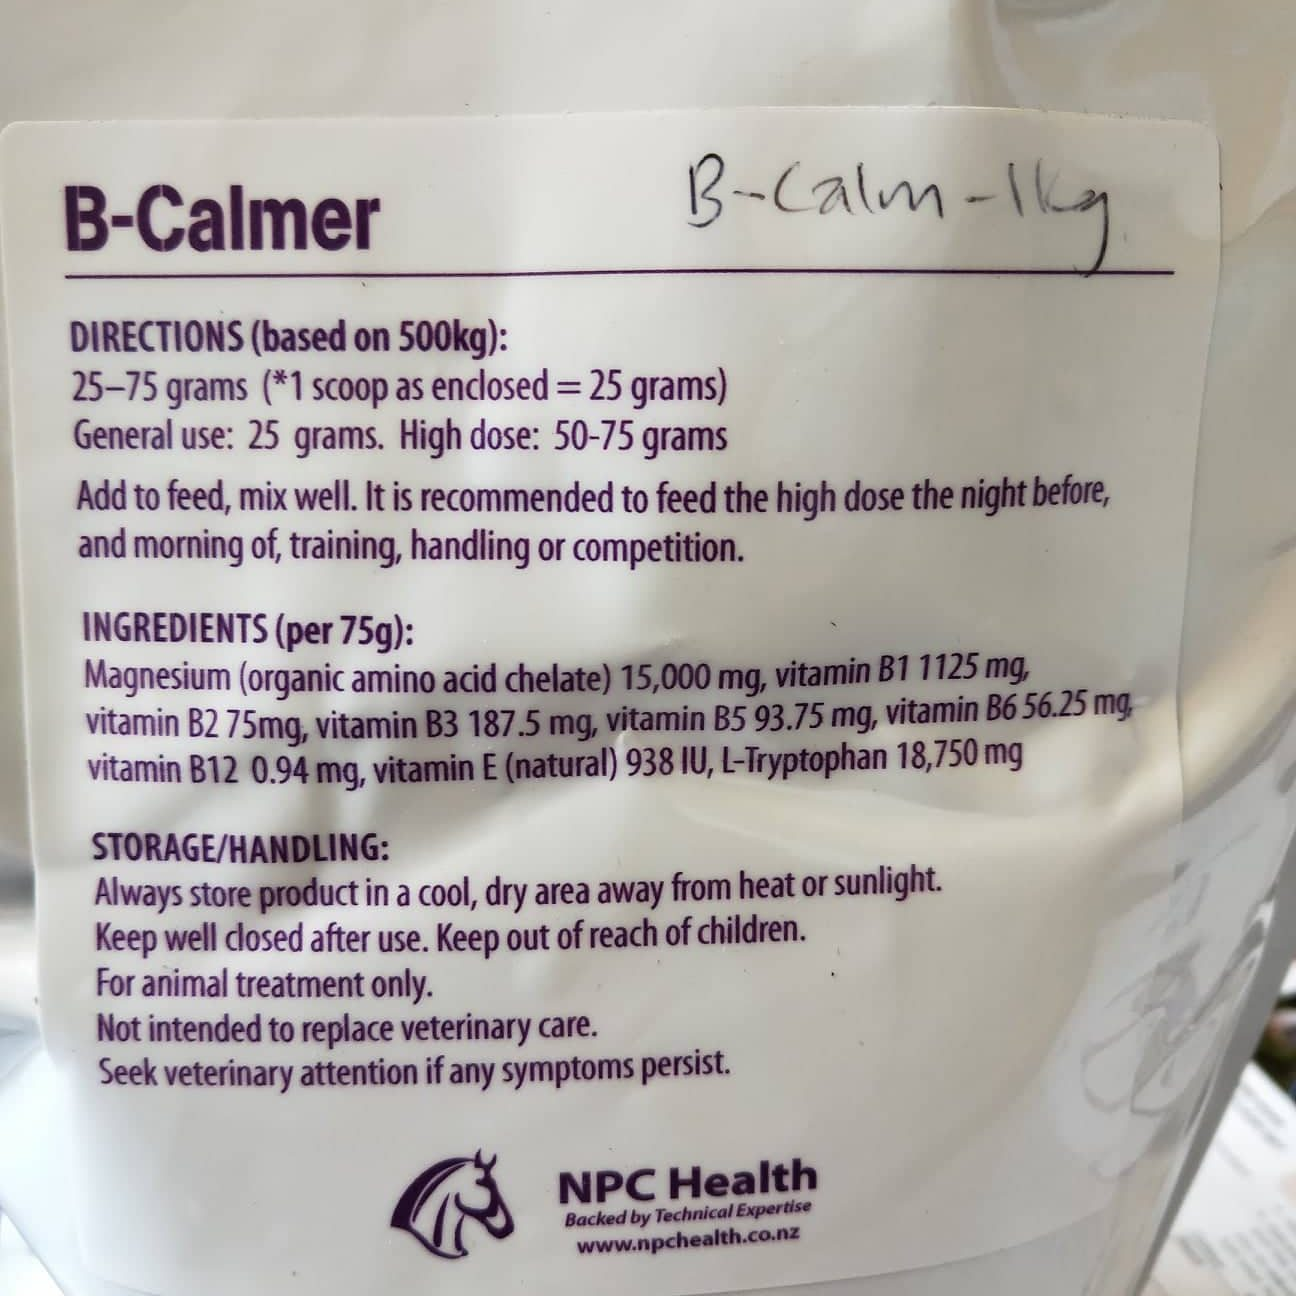 B-Calm ingredients